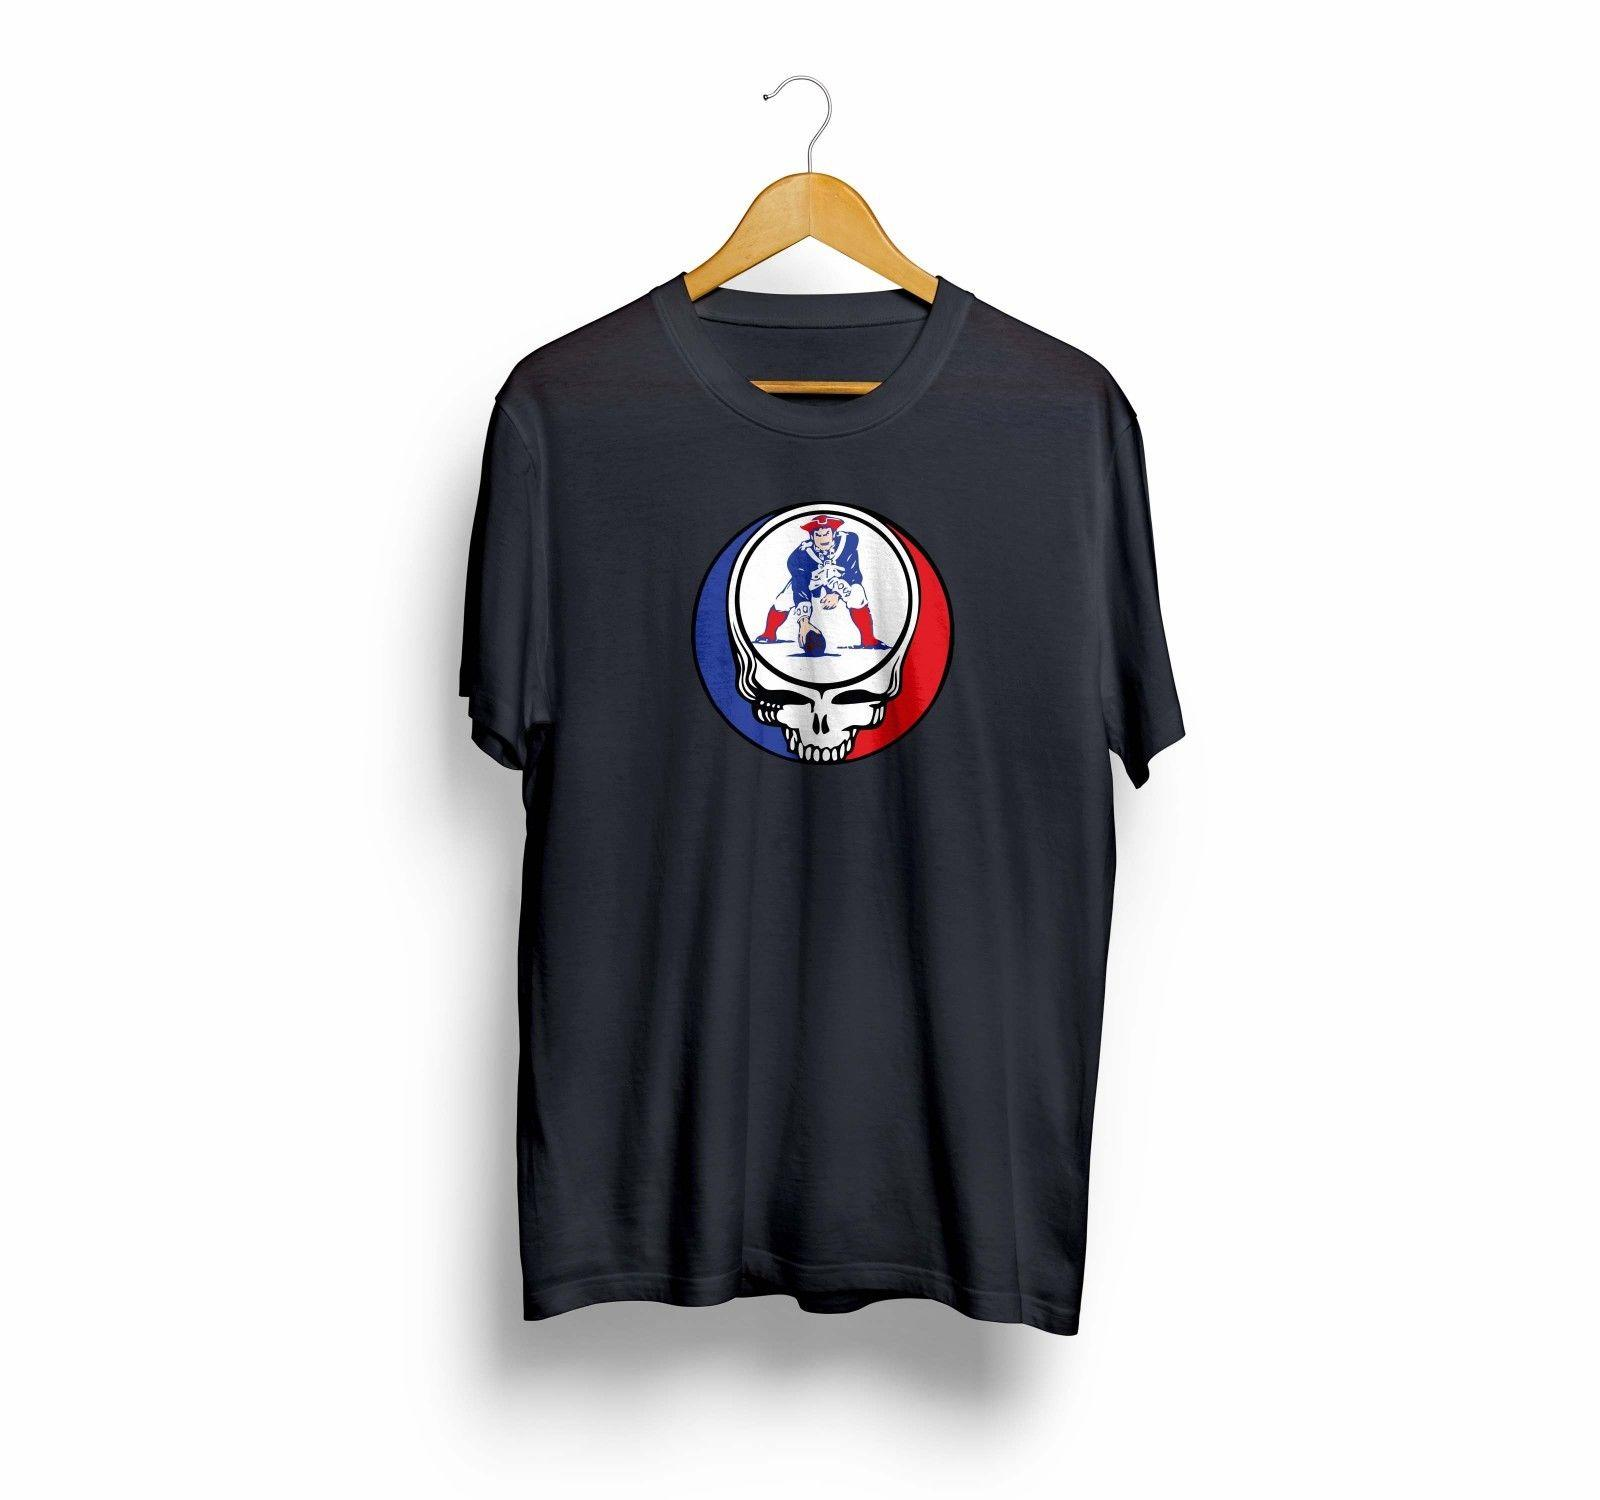 Steal Your Patriots Old School Grateful Dead Men   Women T Shirt T Shirt  Tees New 2018 Hot Summer Men S T Shirt Cool Shopping T Shirts Amusing T  Shirts From ... 3bba7766e